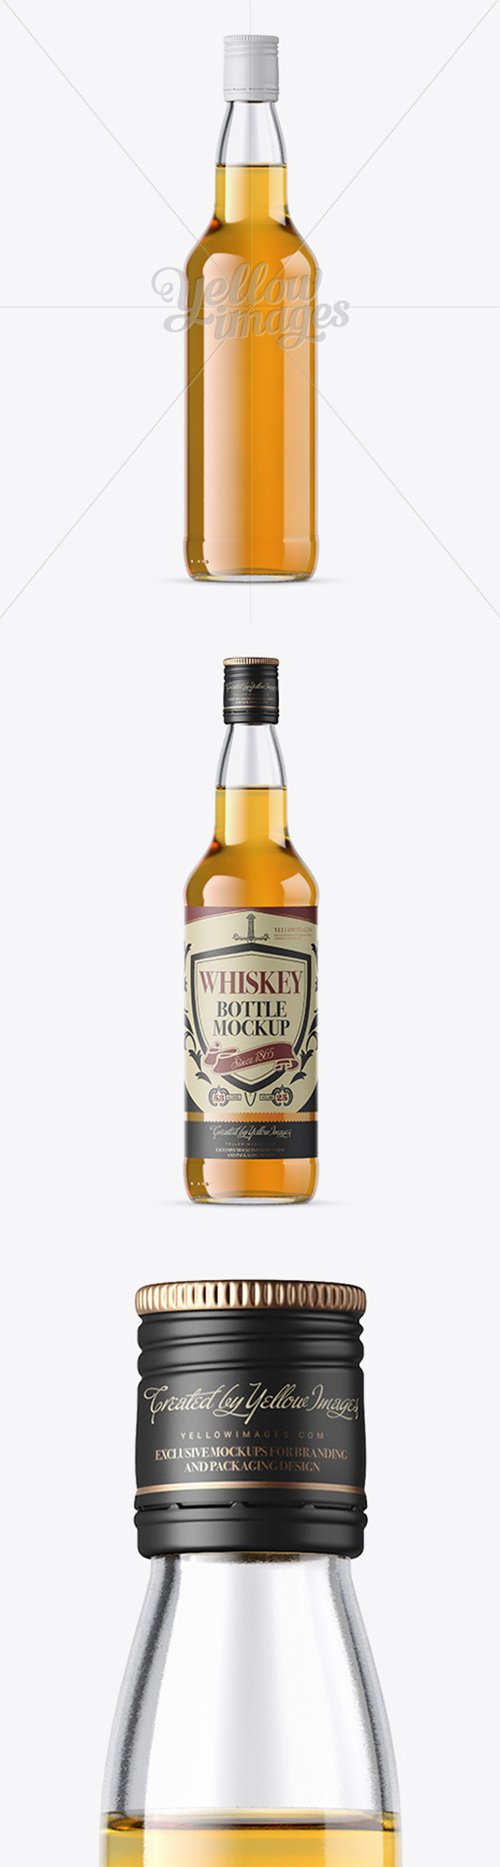 Clear Glass Whiskey Bottle Mockup 14409 Tif Avaxgfx All Downloads That You Need In One Place Graphic From Nitroflare Bottle Mockup Whiskey Bottle Bottle